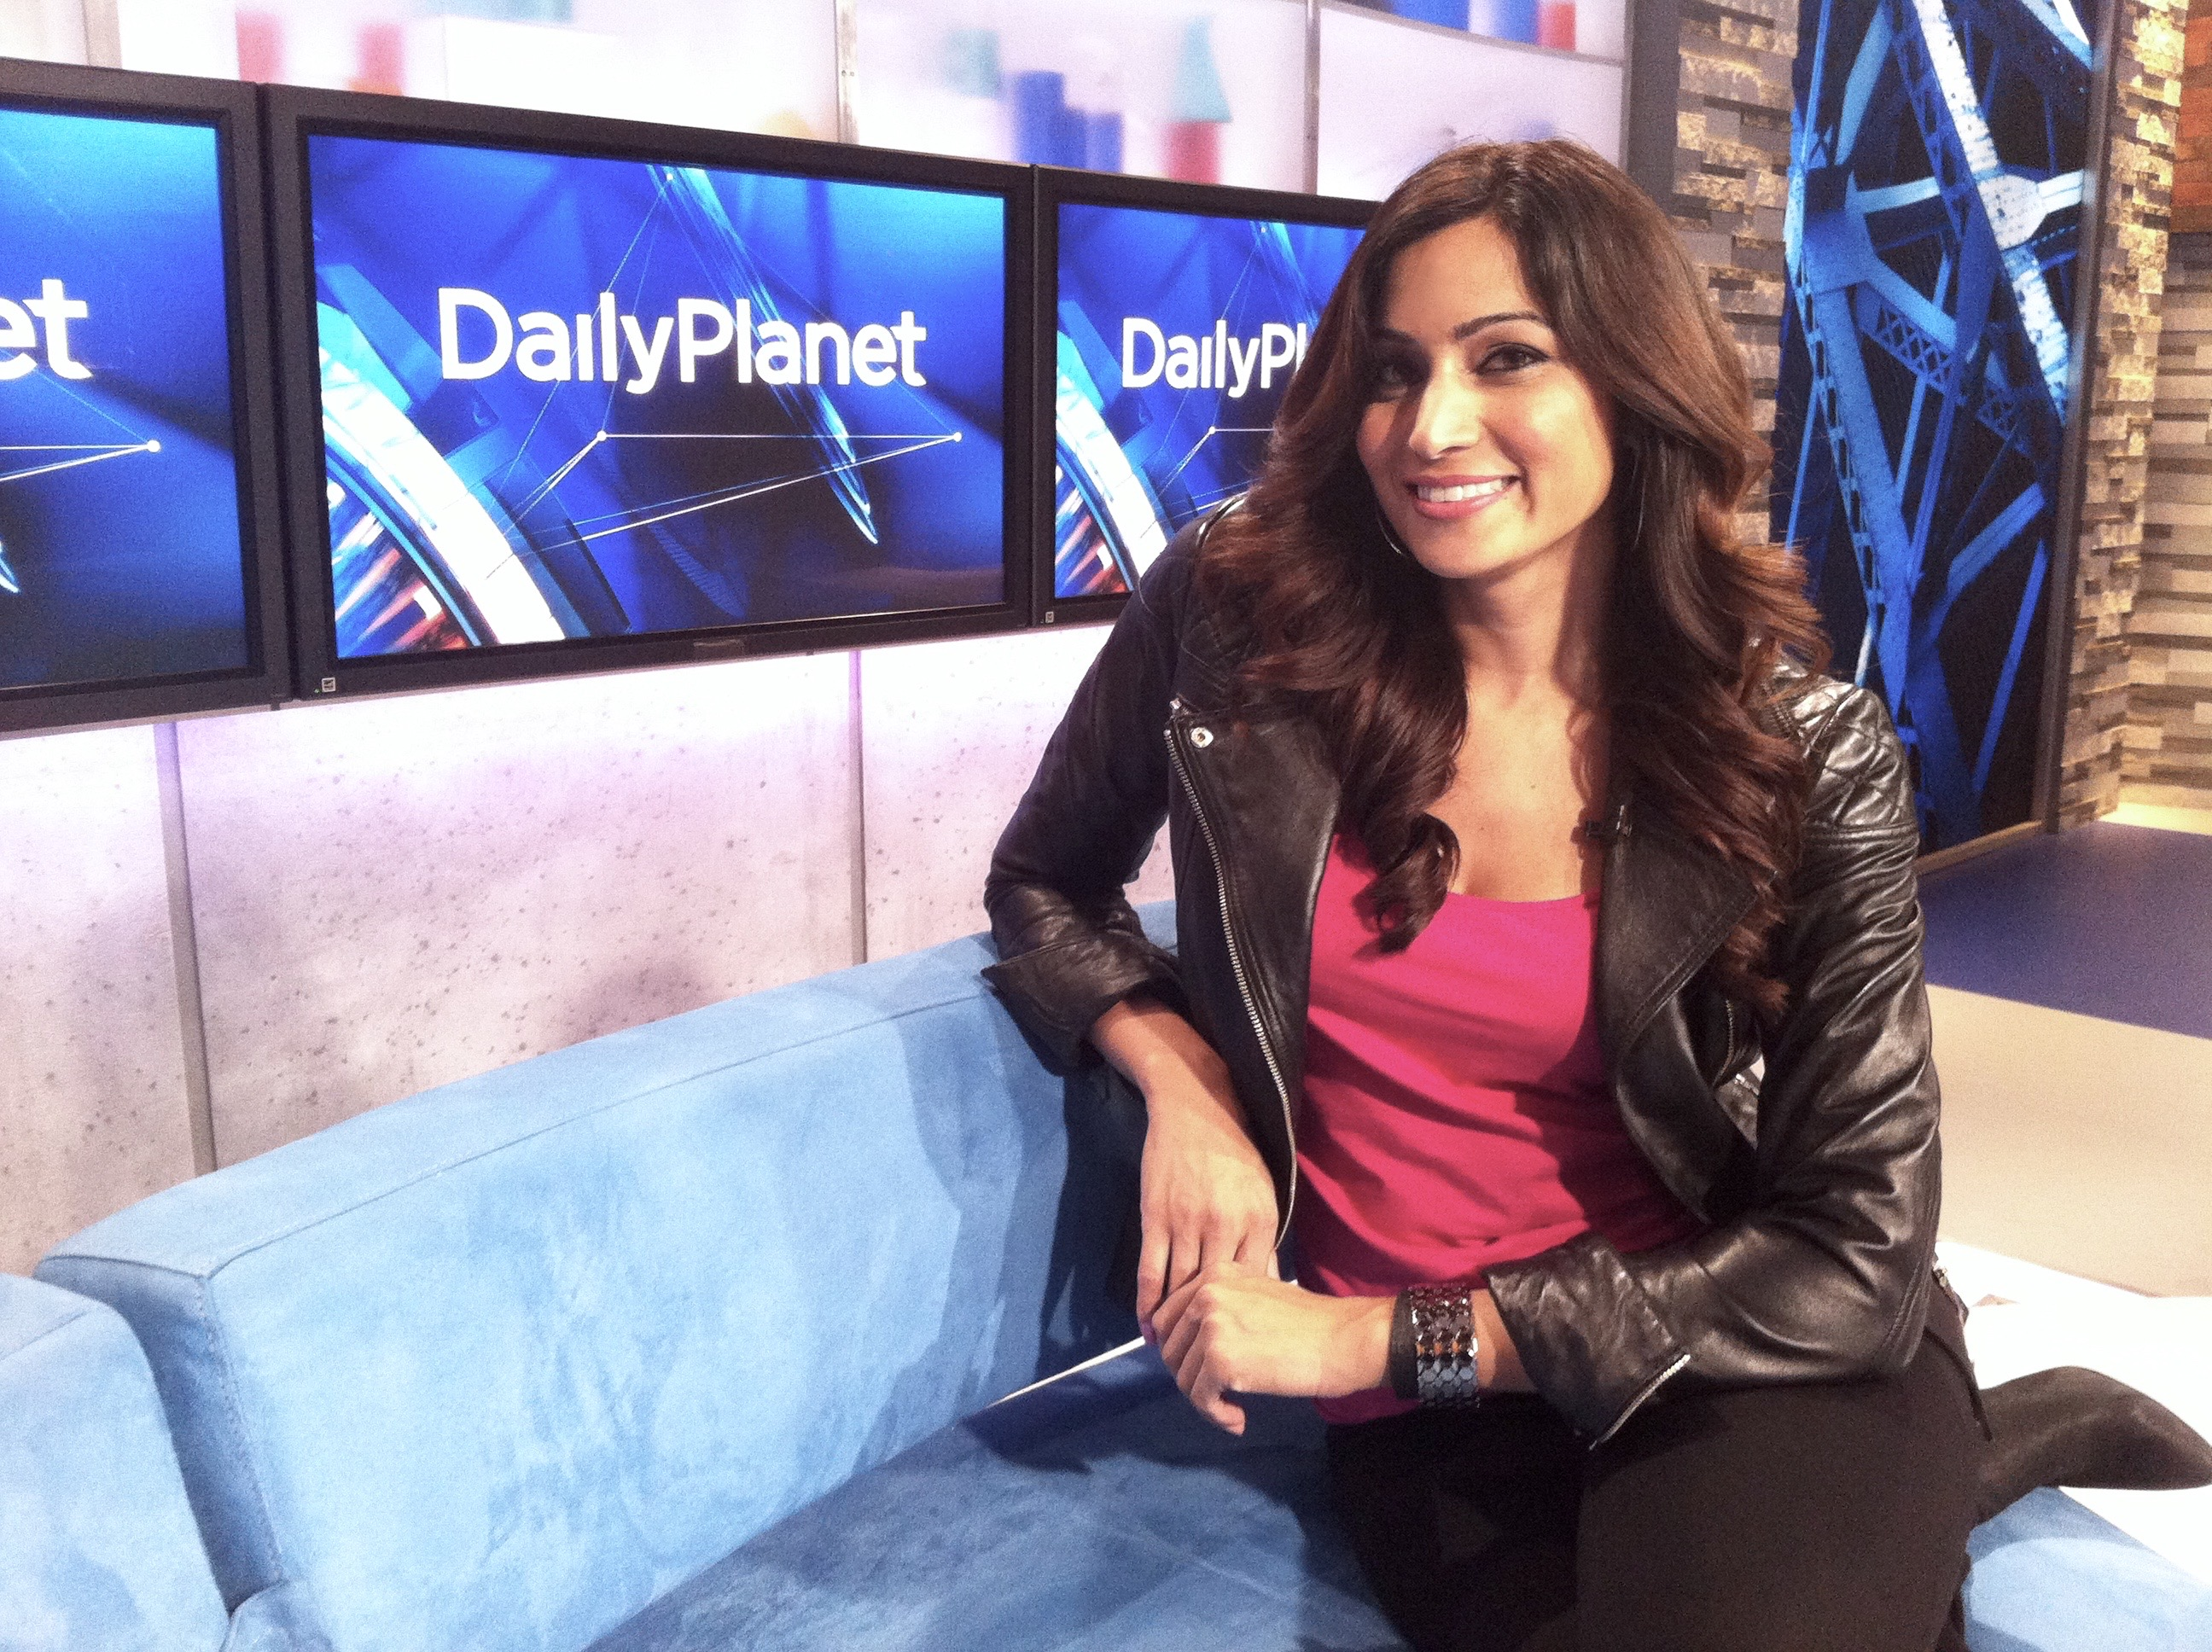 2. Discovery Channel Host